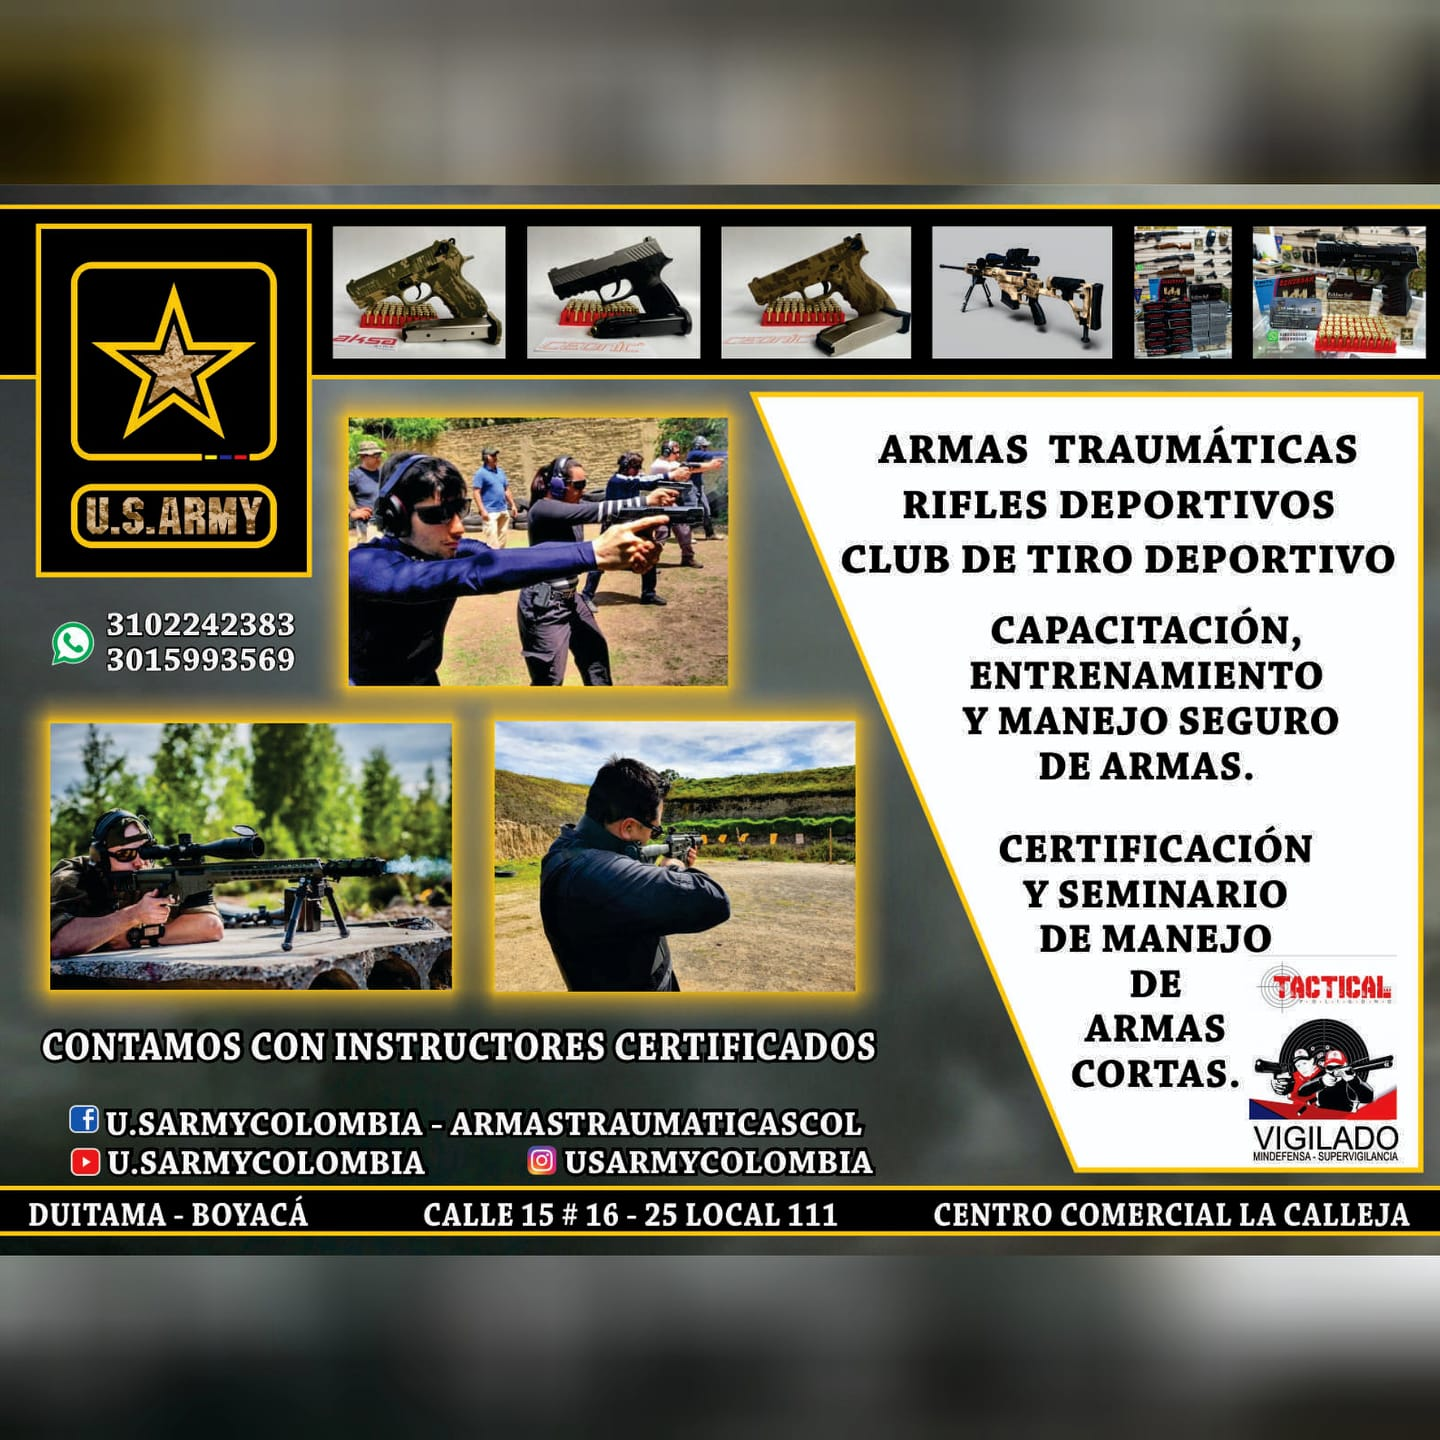 U.S. ARMY COLOMBIA